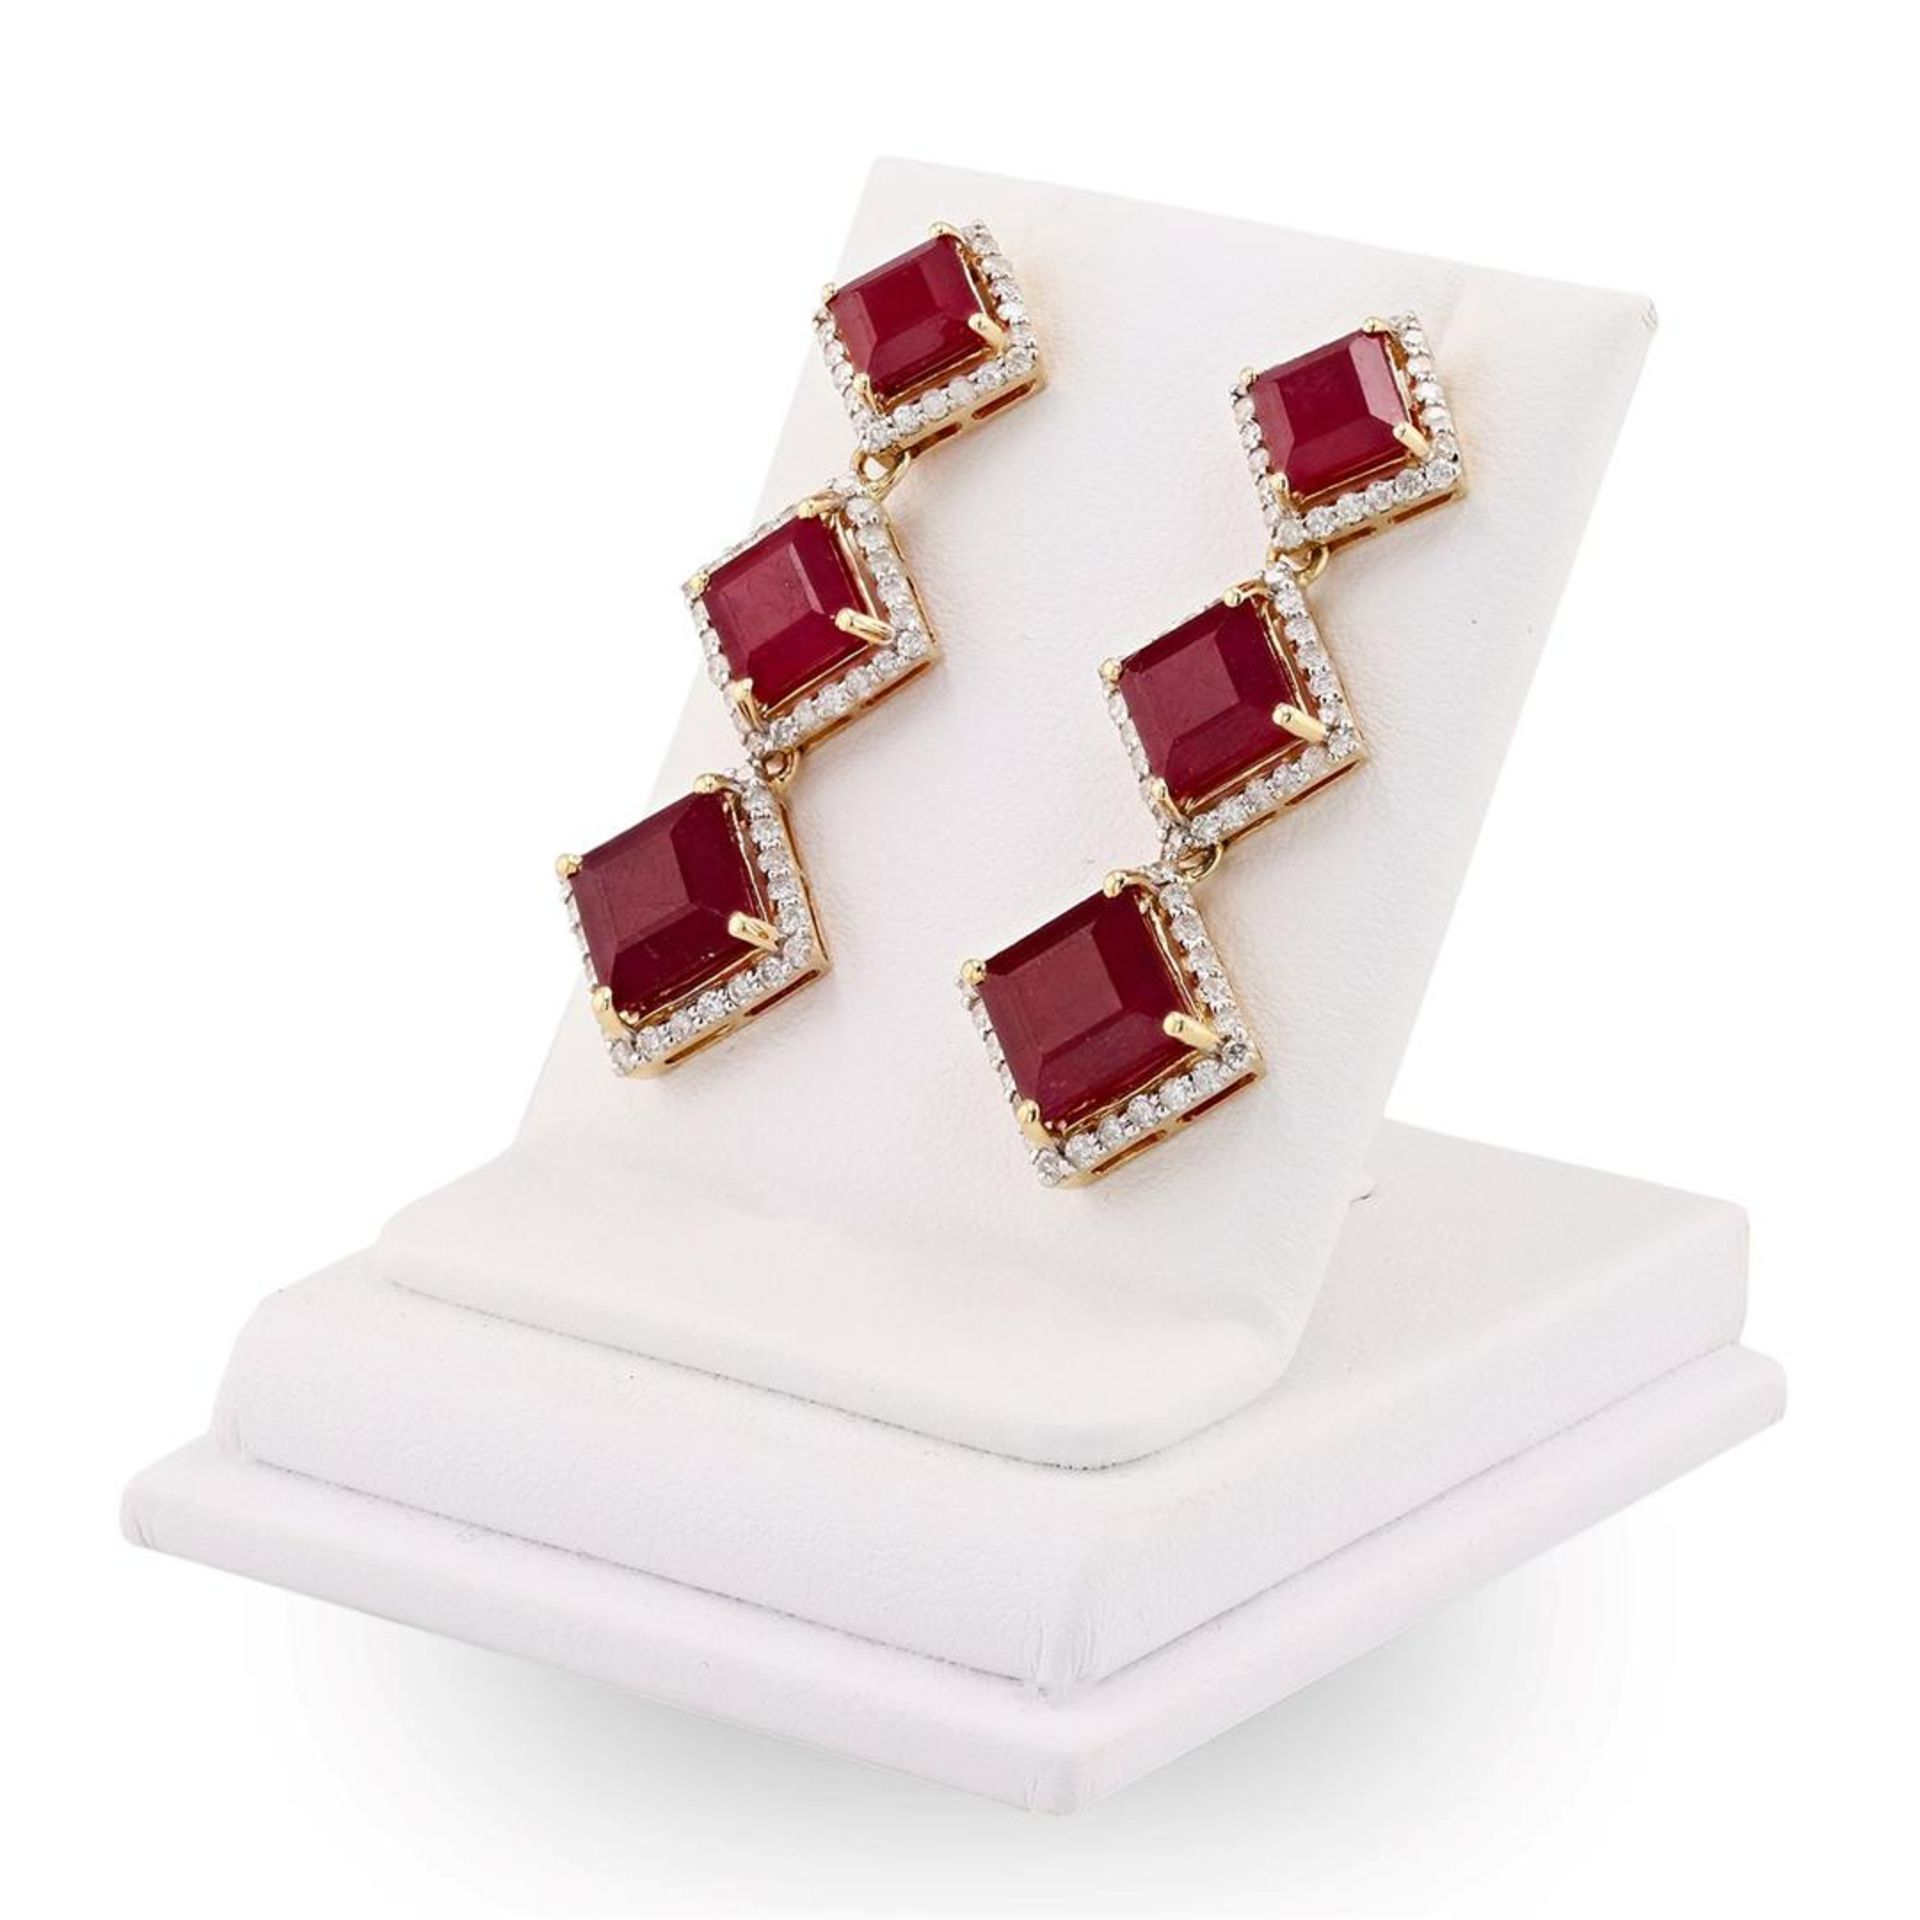 16.77 ctw Ruby and 1.41 ctw Diamond 14K Yellow Gold Earrings - Image 3 of 4